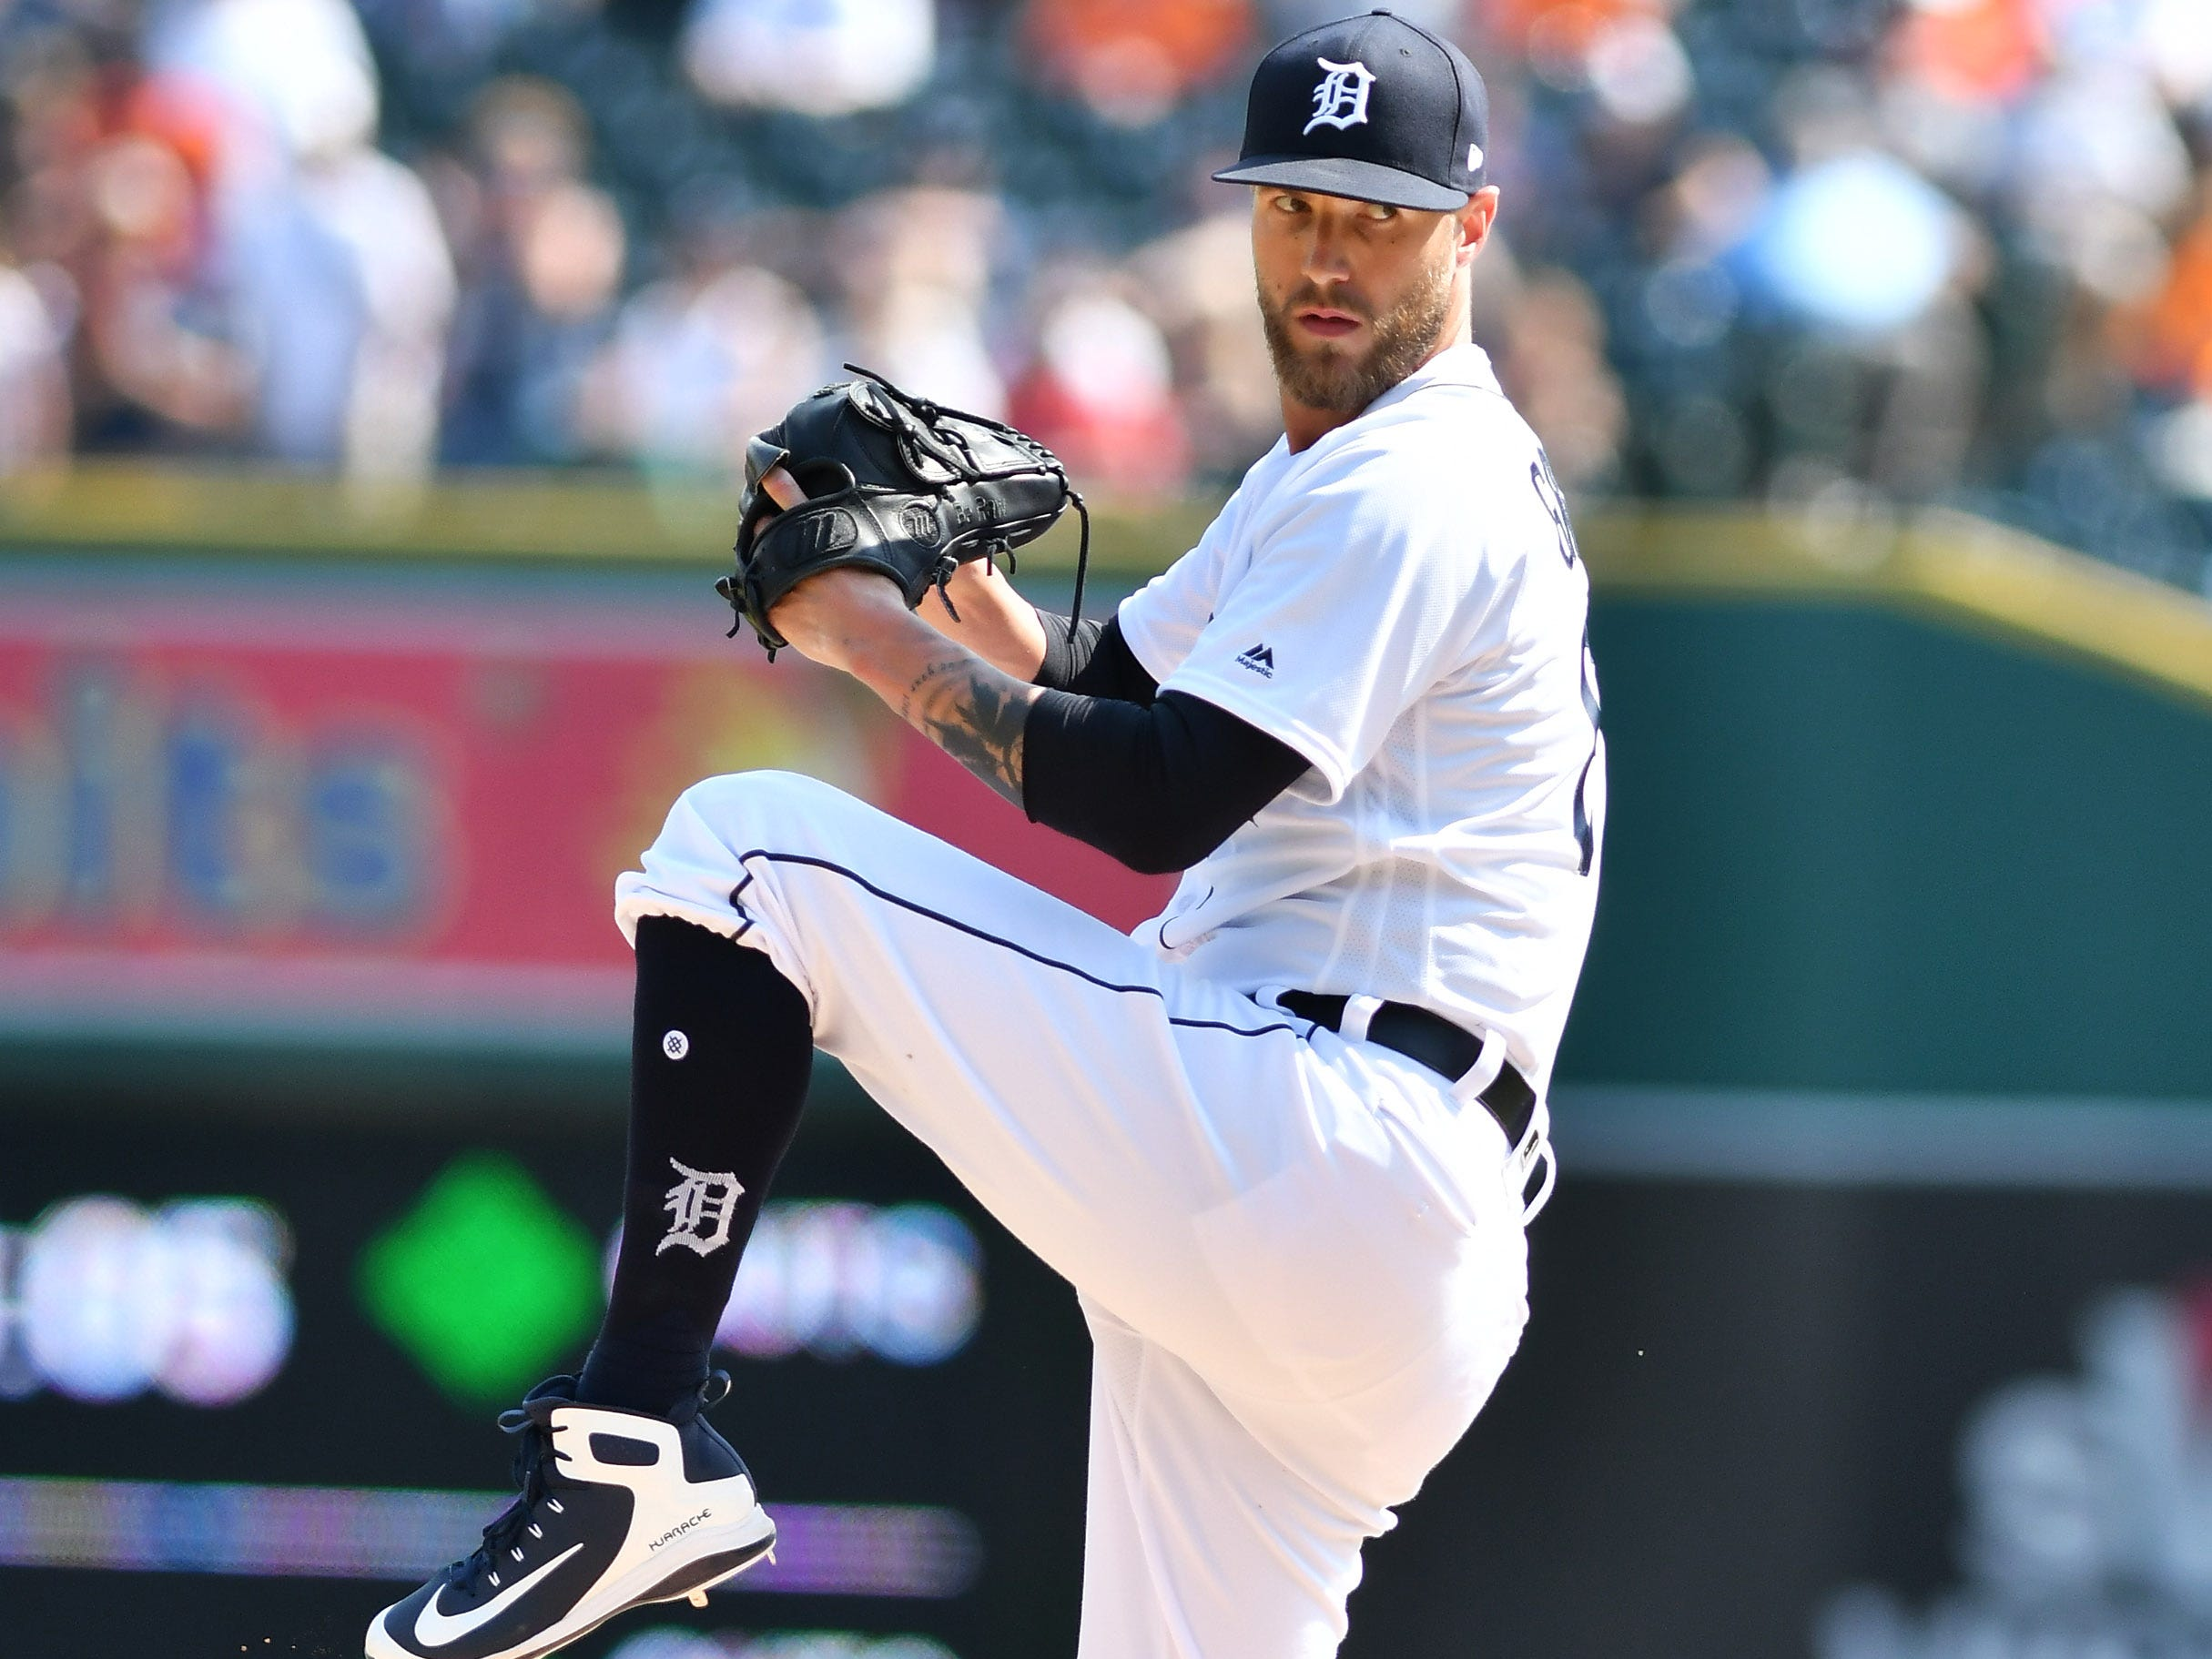 Tigers pitcher Shane Greene works in the ninth inning.